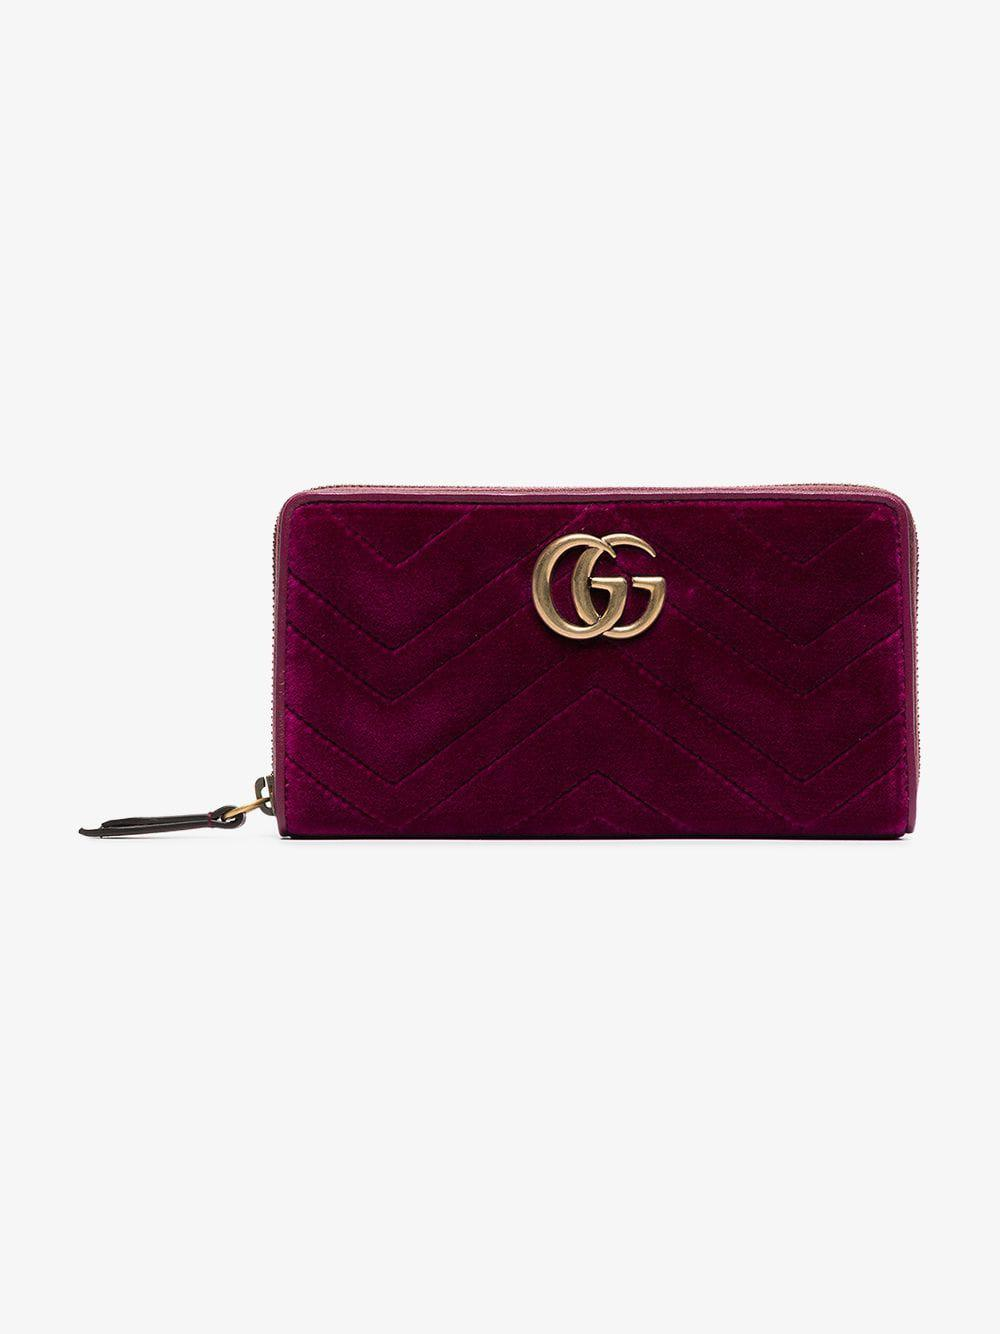 290fabab6ac4 Lyst - Gucci Purple GG Marmont Quilted Velvet Wallet in Purple ...